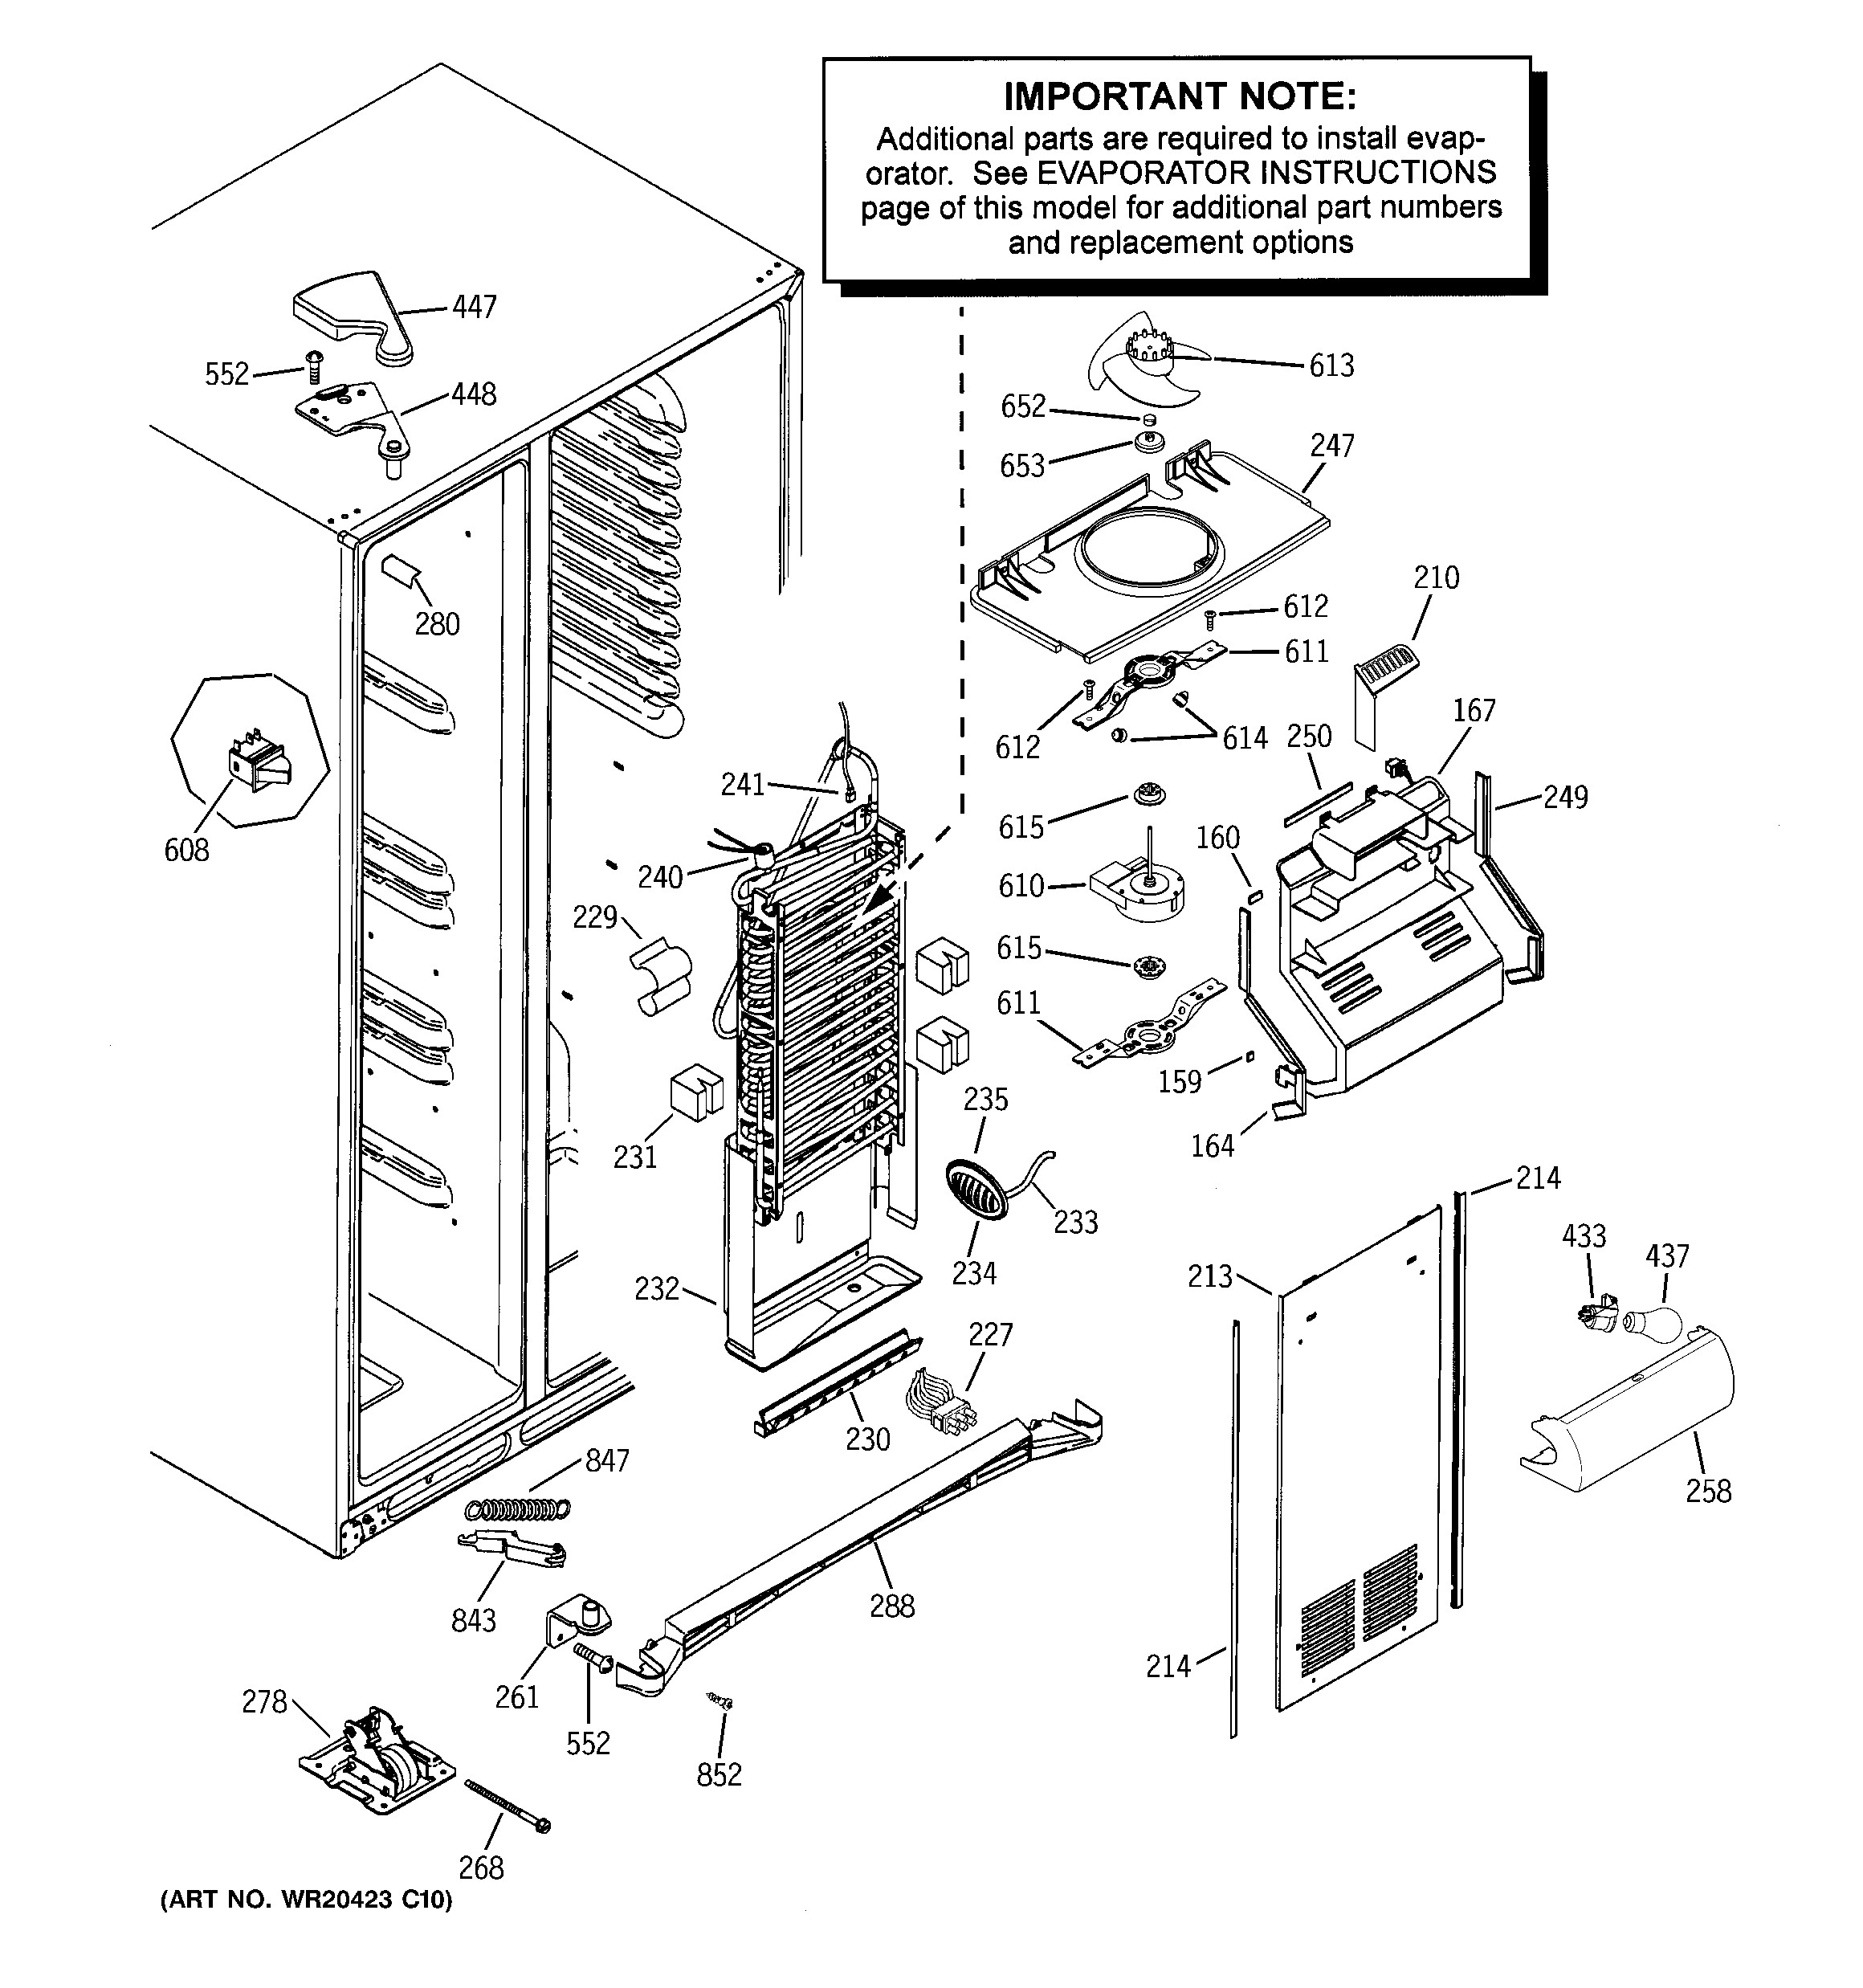 Ge Microwave Parts Diagram Ge Refrigerator W Series Parts Model Gss25qswlss Of Ge Microwave Parts Diagram